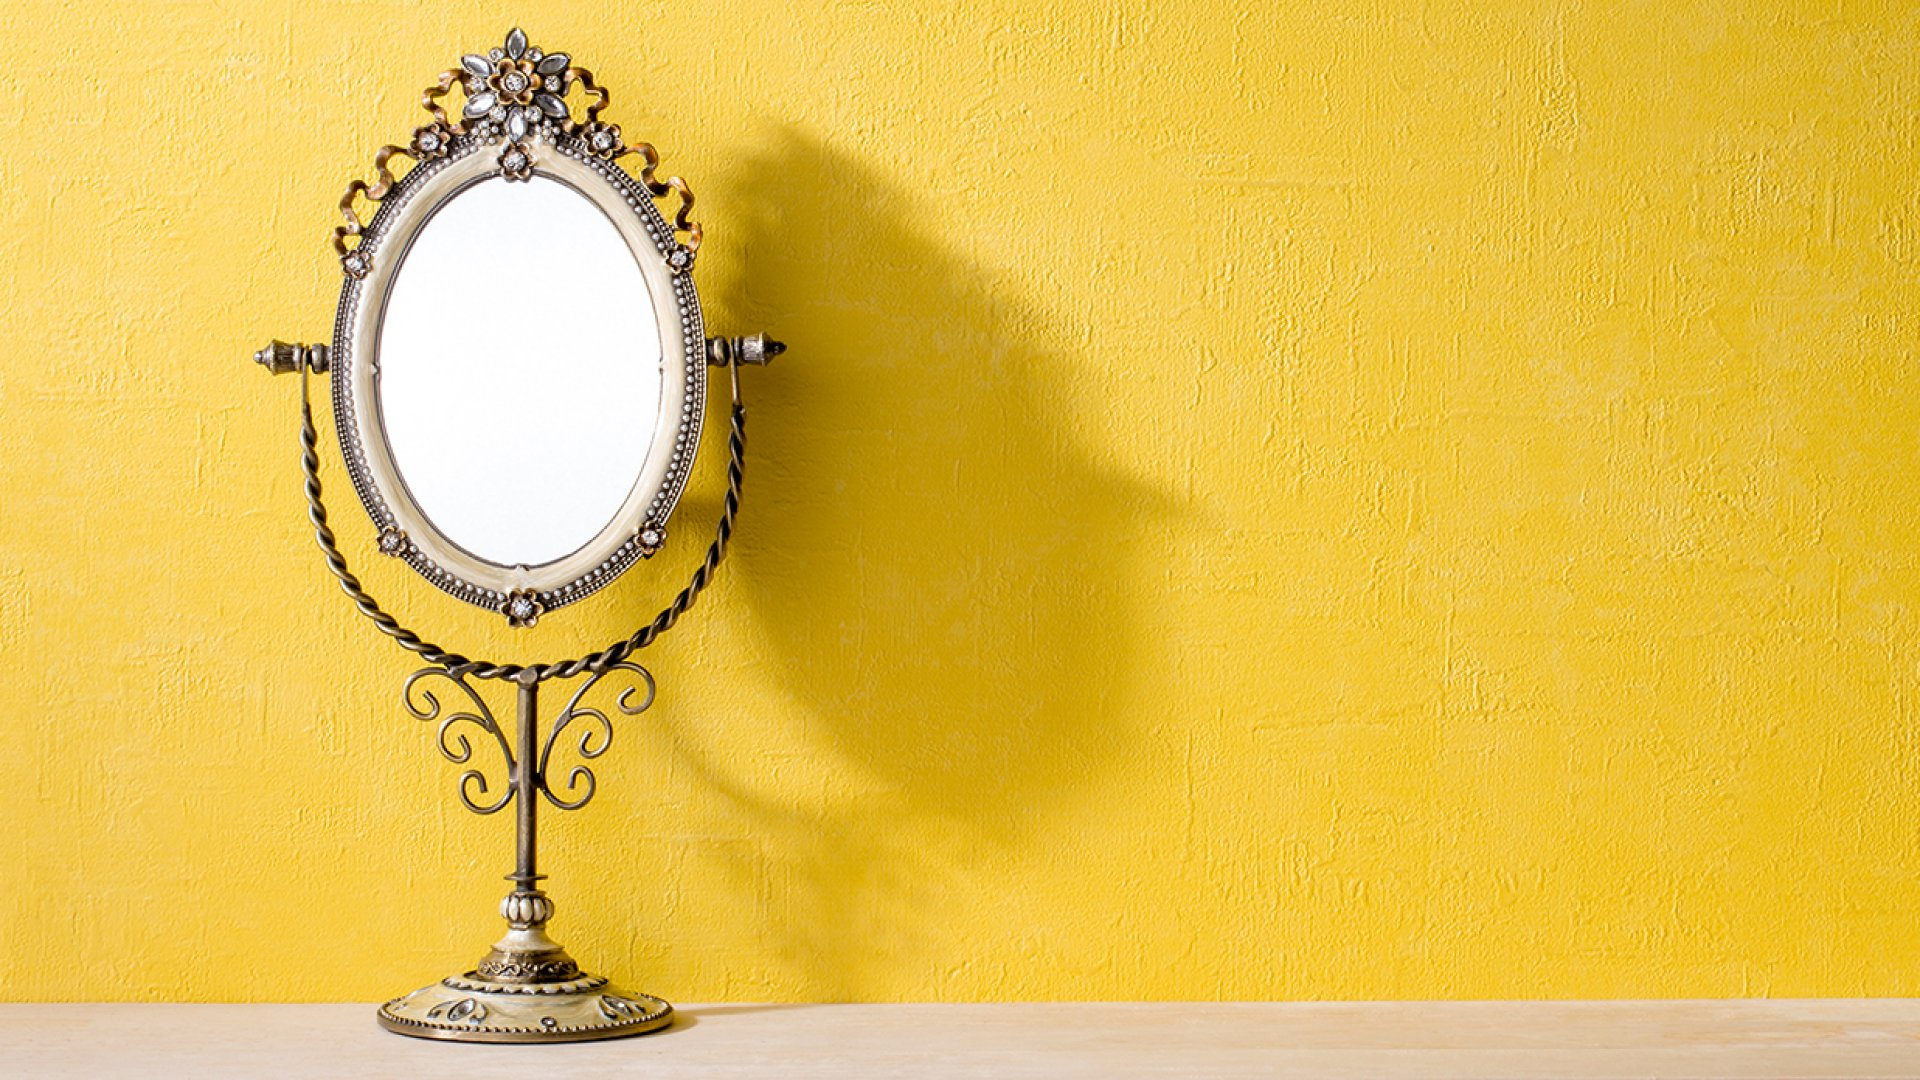 Do You Work With a Narcissist? Here's How to Tell in 5 Minutes